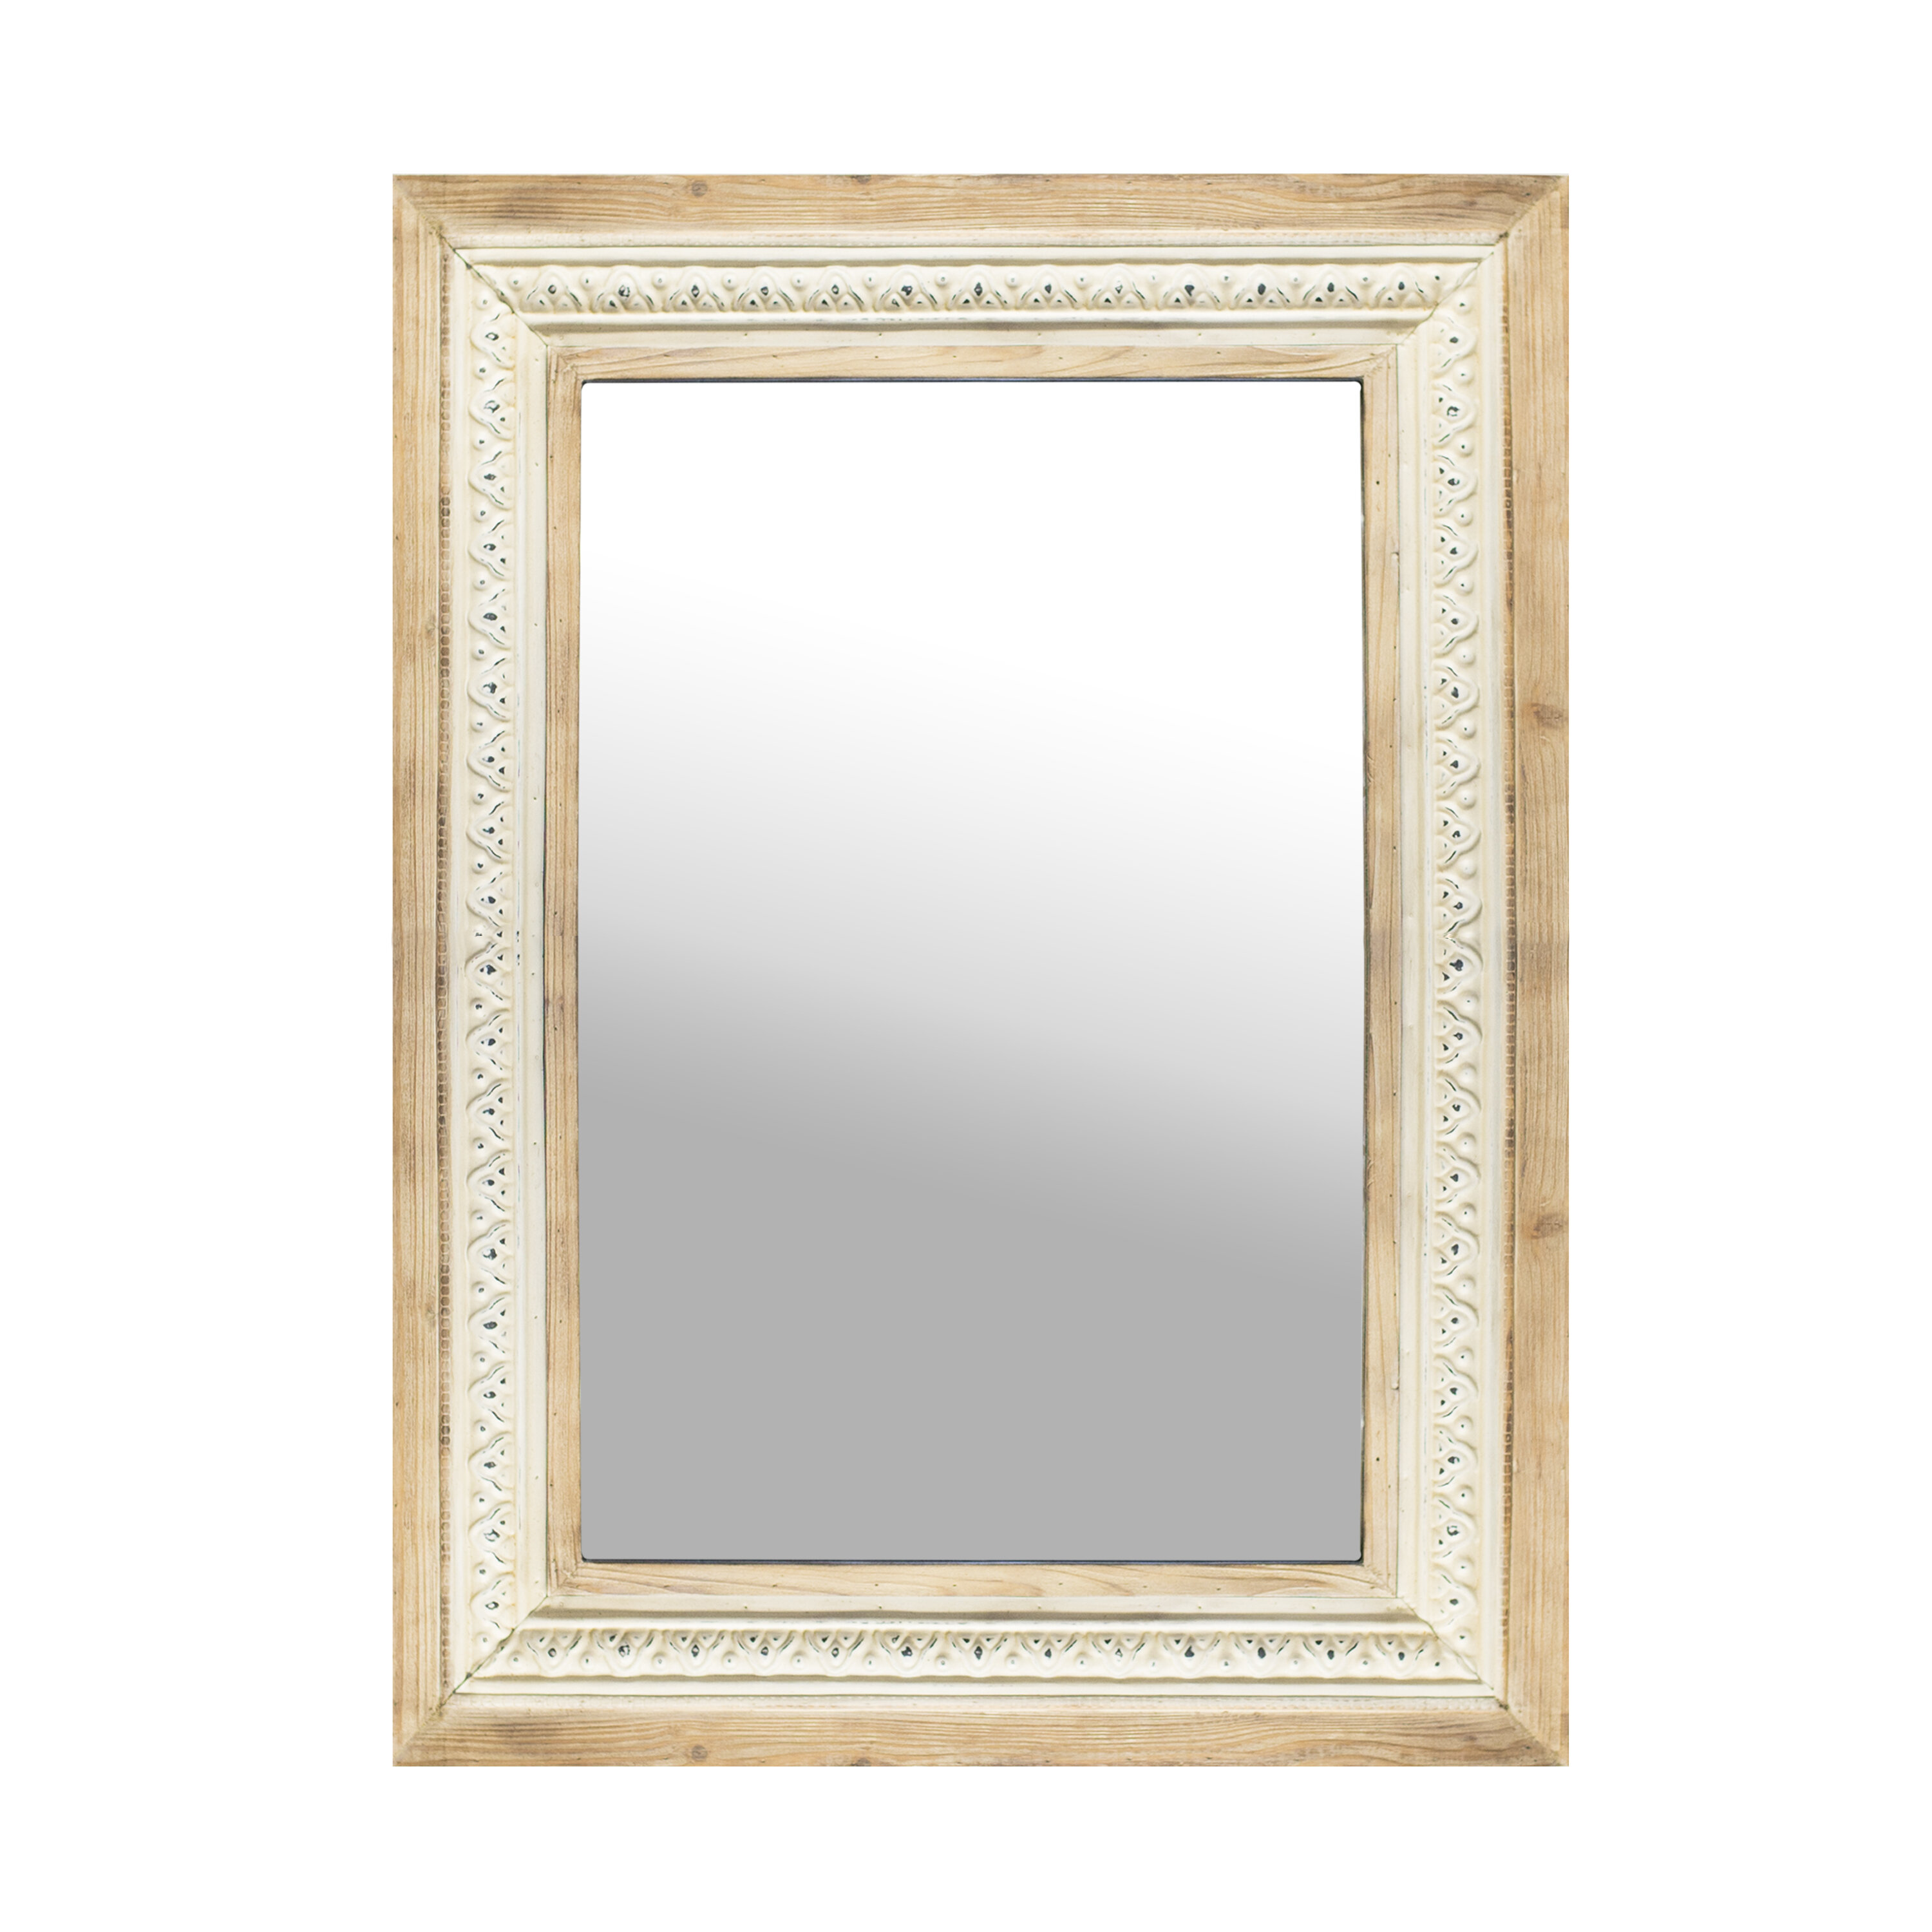 Large Oversized Bungalow Rose Wall Mirrors You Ll Love In 2021 Wayfair